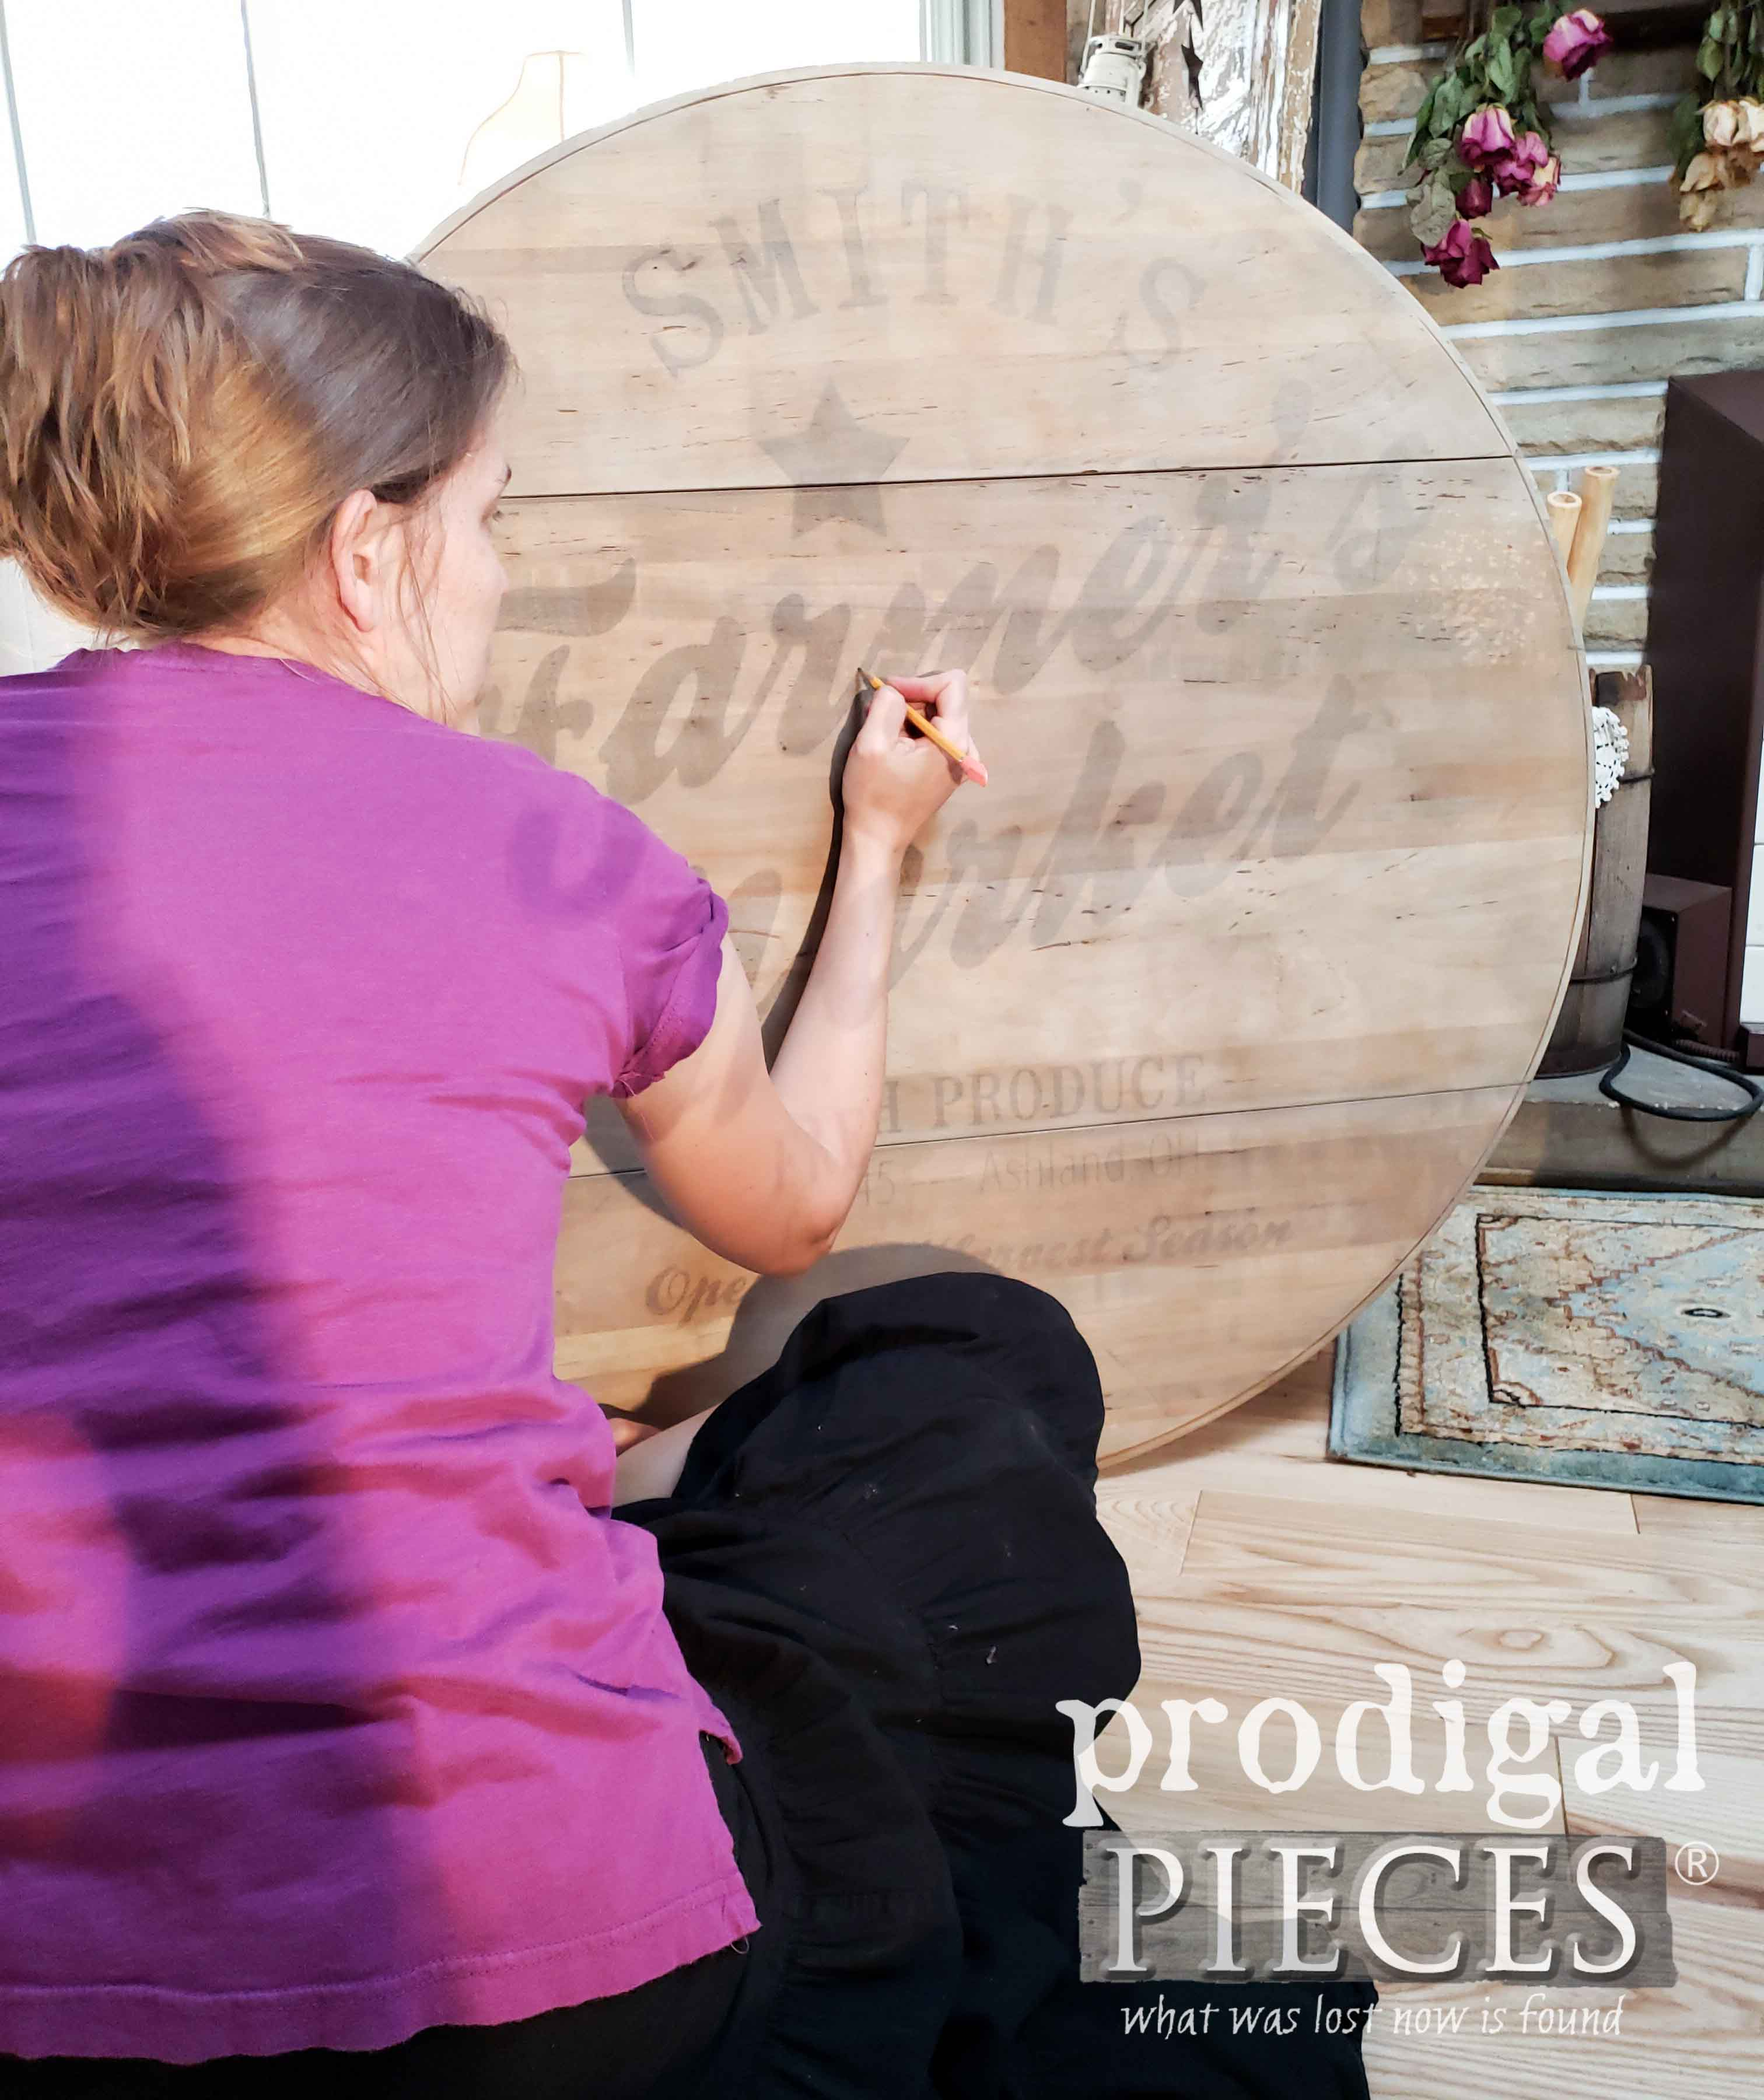 Transferring Typography Image onto Table with Overhead Projector   by Larissa at Prodigal Pieces   prodigalpieces.com #prodigalpieces #diy #furniture